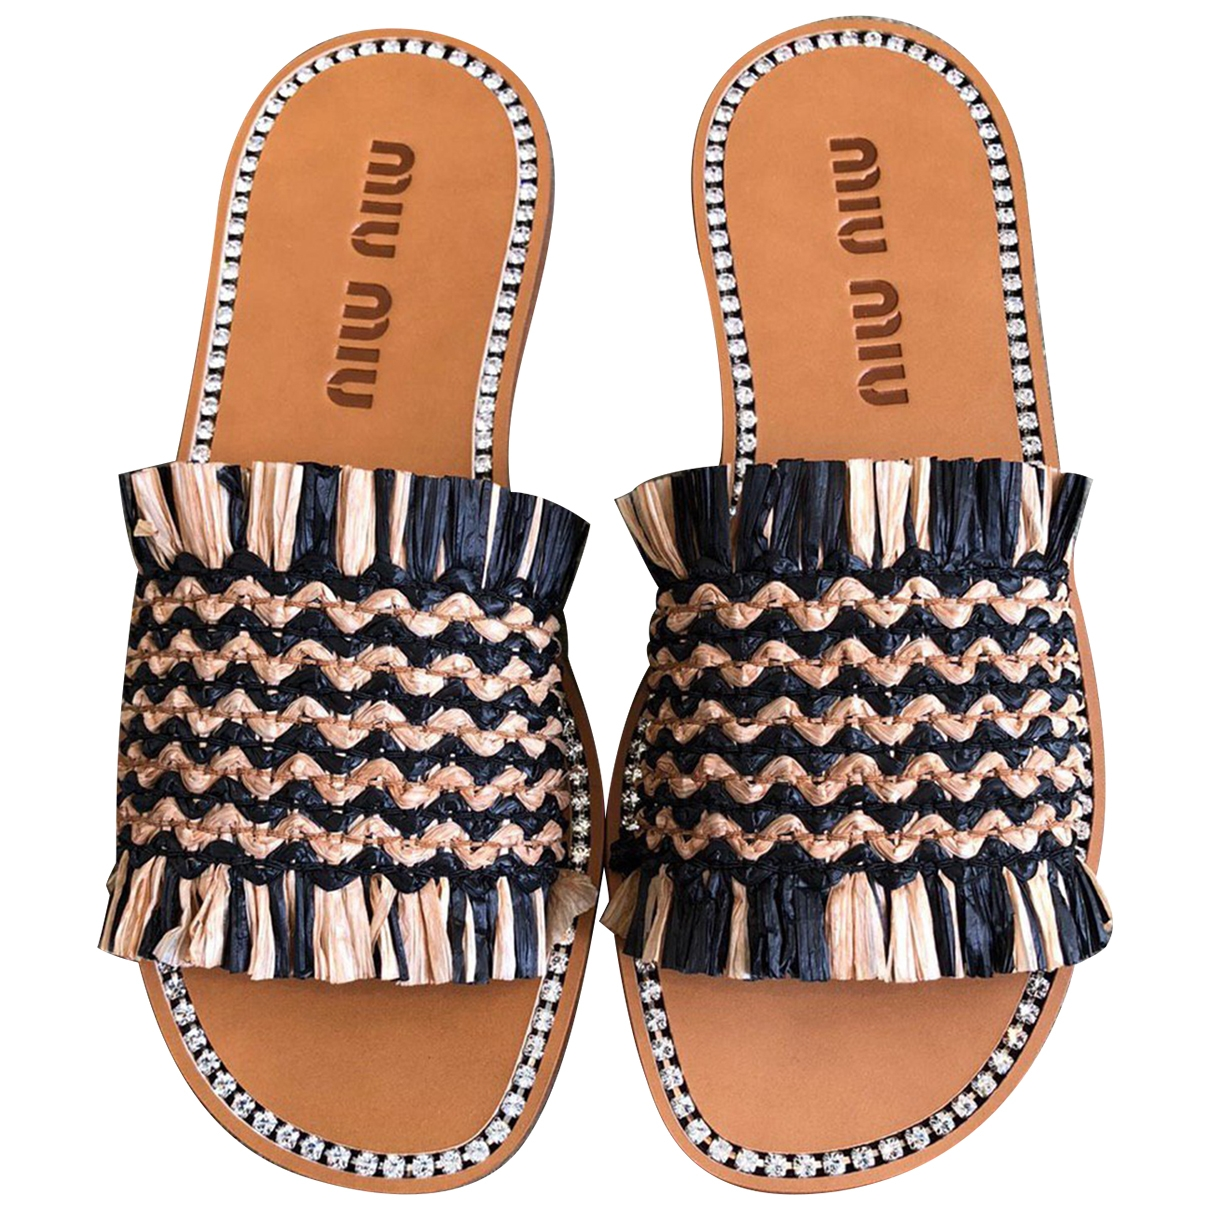 Miu Miu \N Brown Leather Sandals for Women 37.5 EU